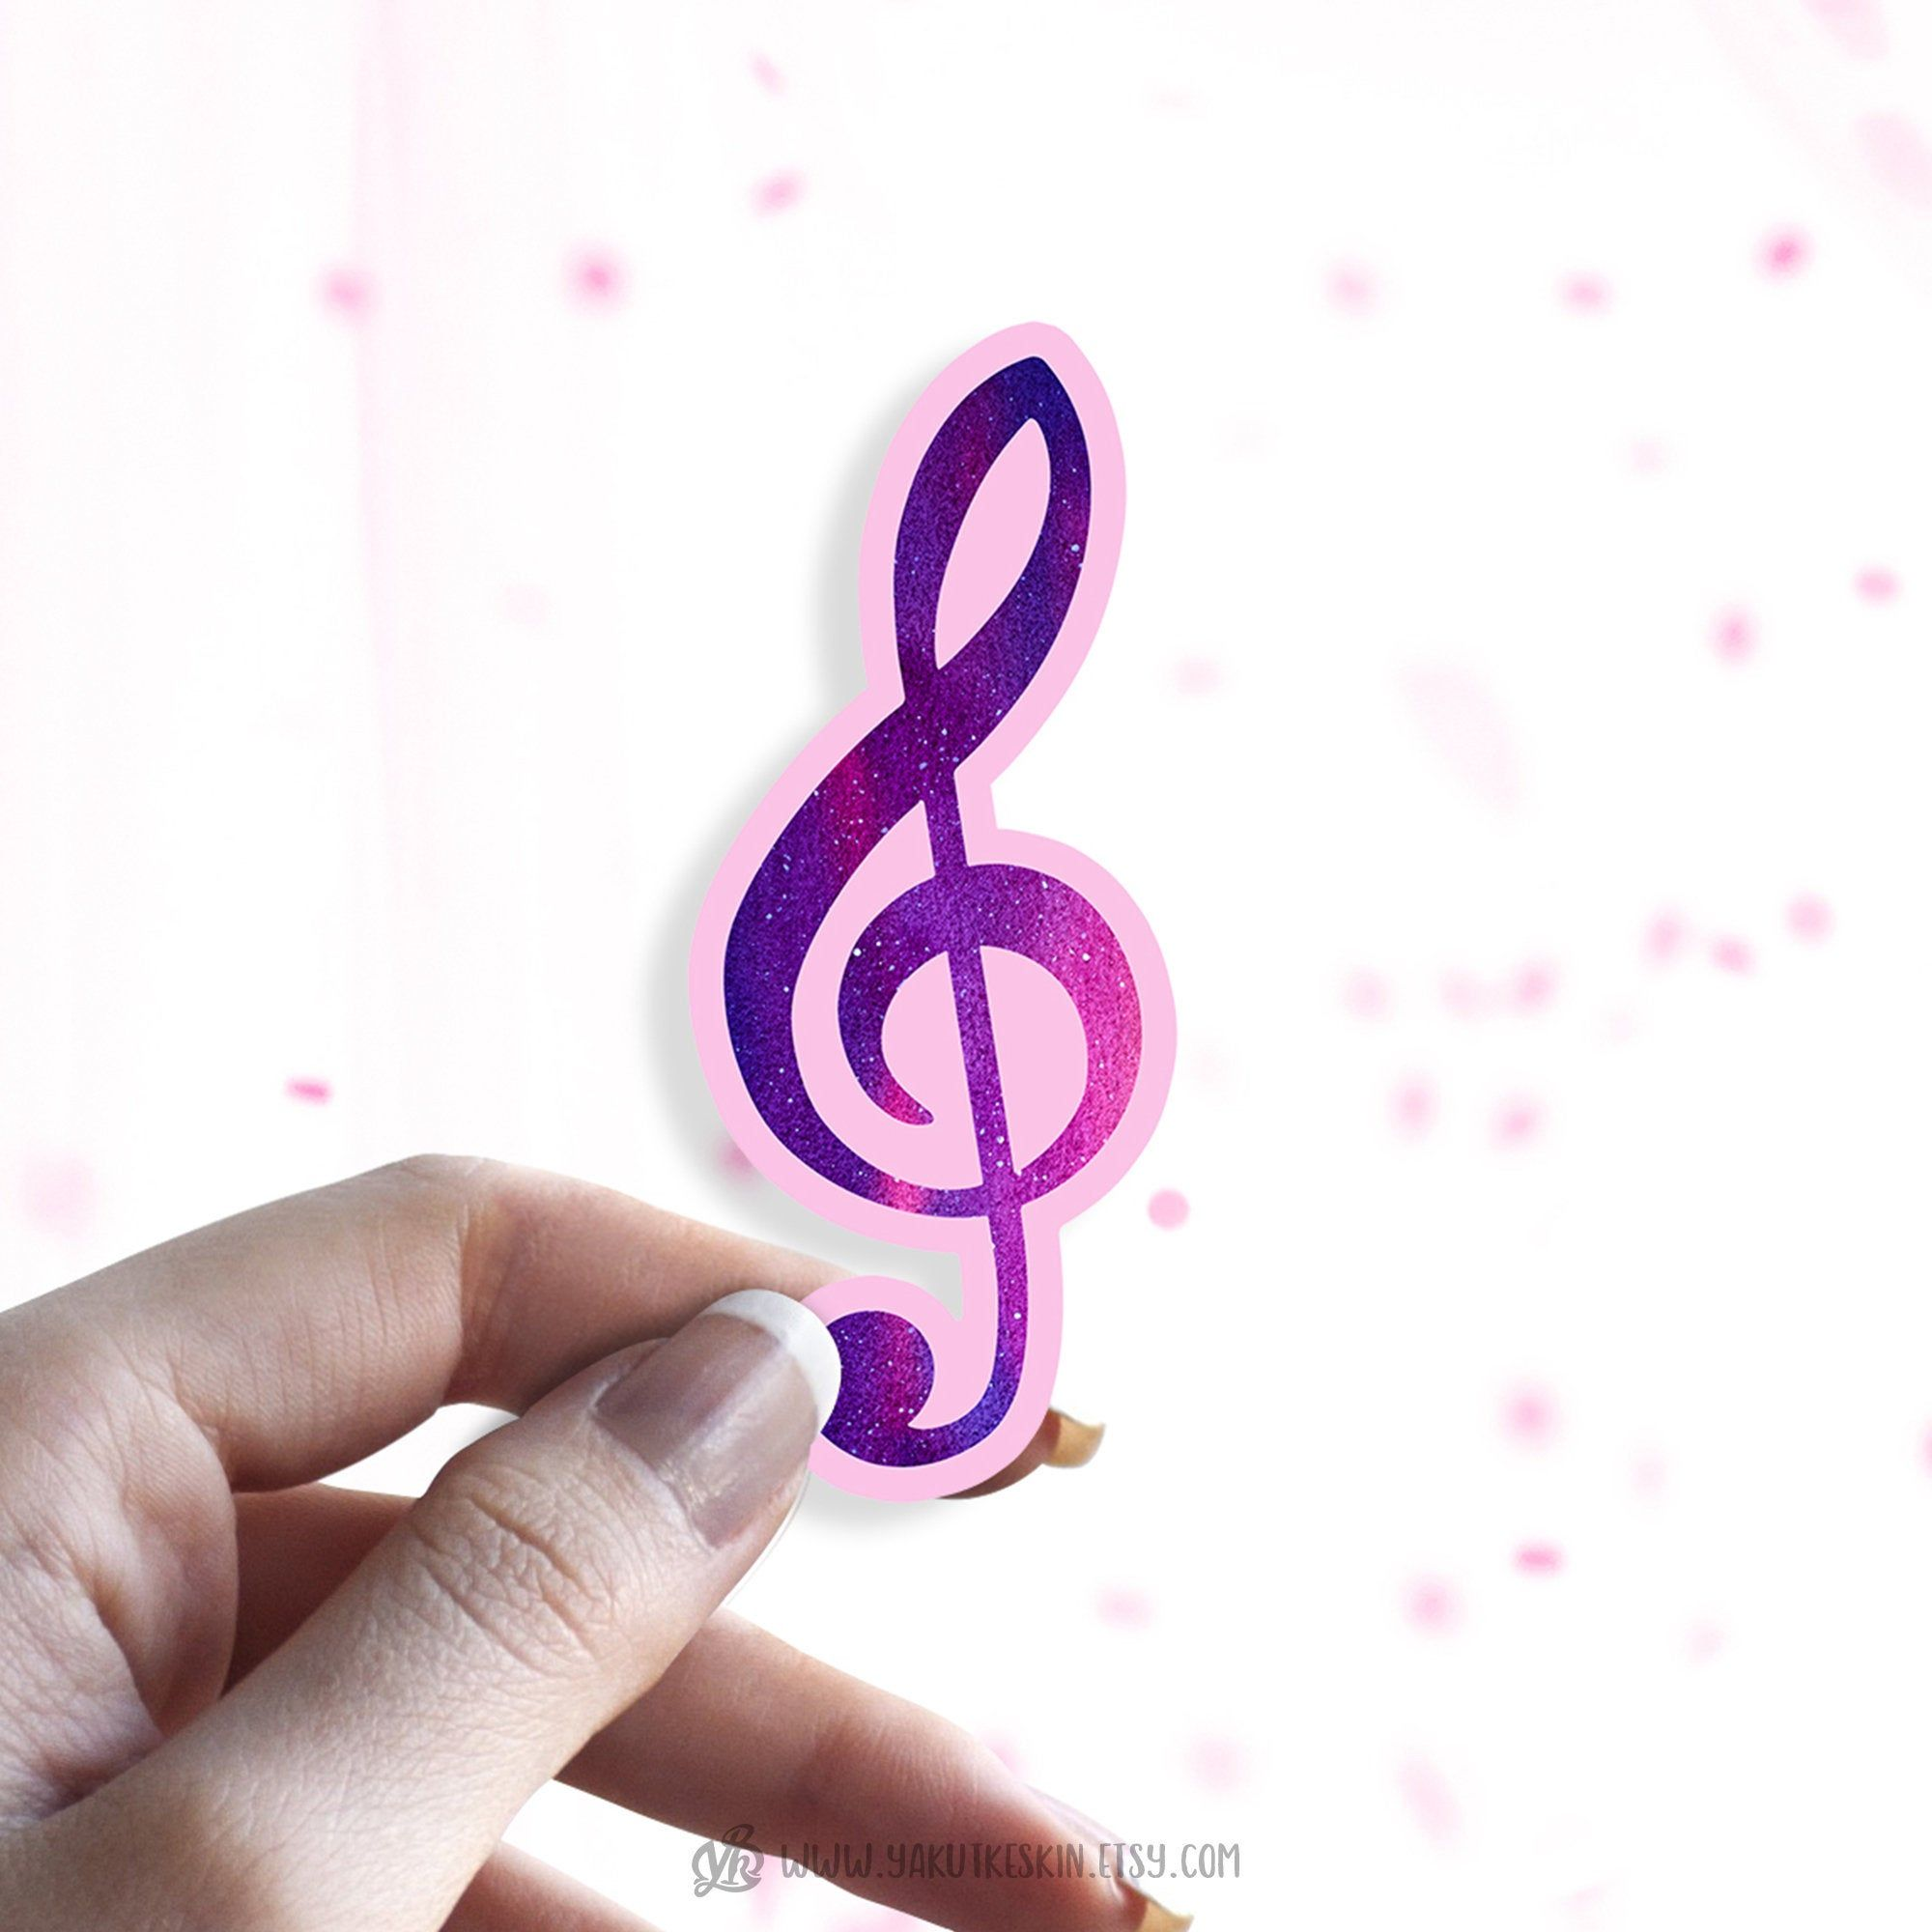 Watercolor Treble Clef Waterproof Vinyl Sticker Music Teacher Etsy In 2020 Music Teacher Gifts Vinyl Sticker Paper Vinyl Sticker